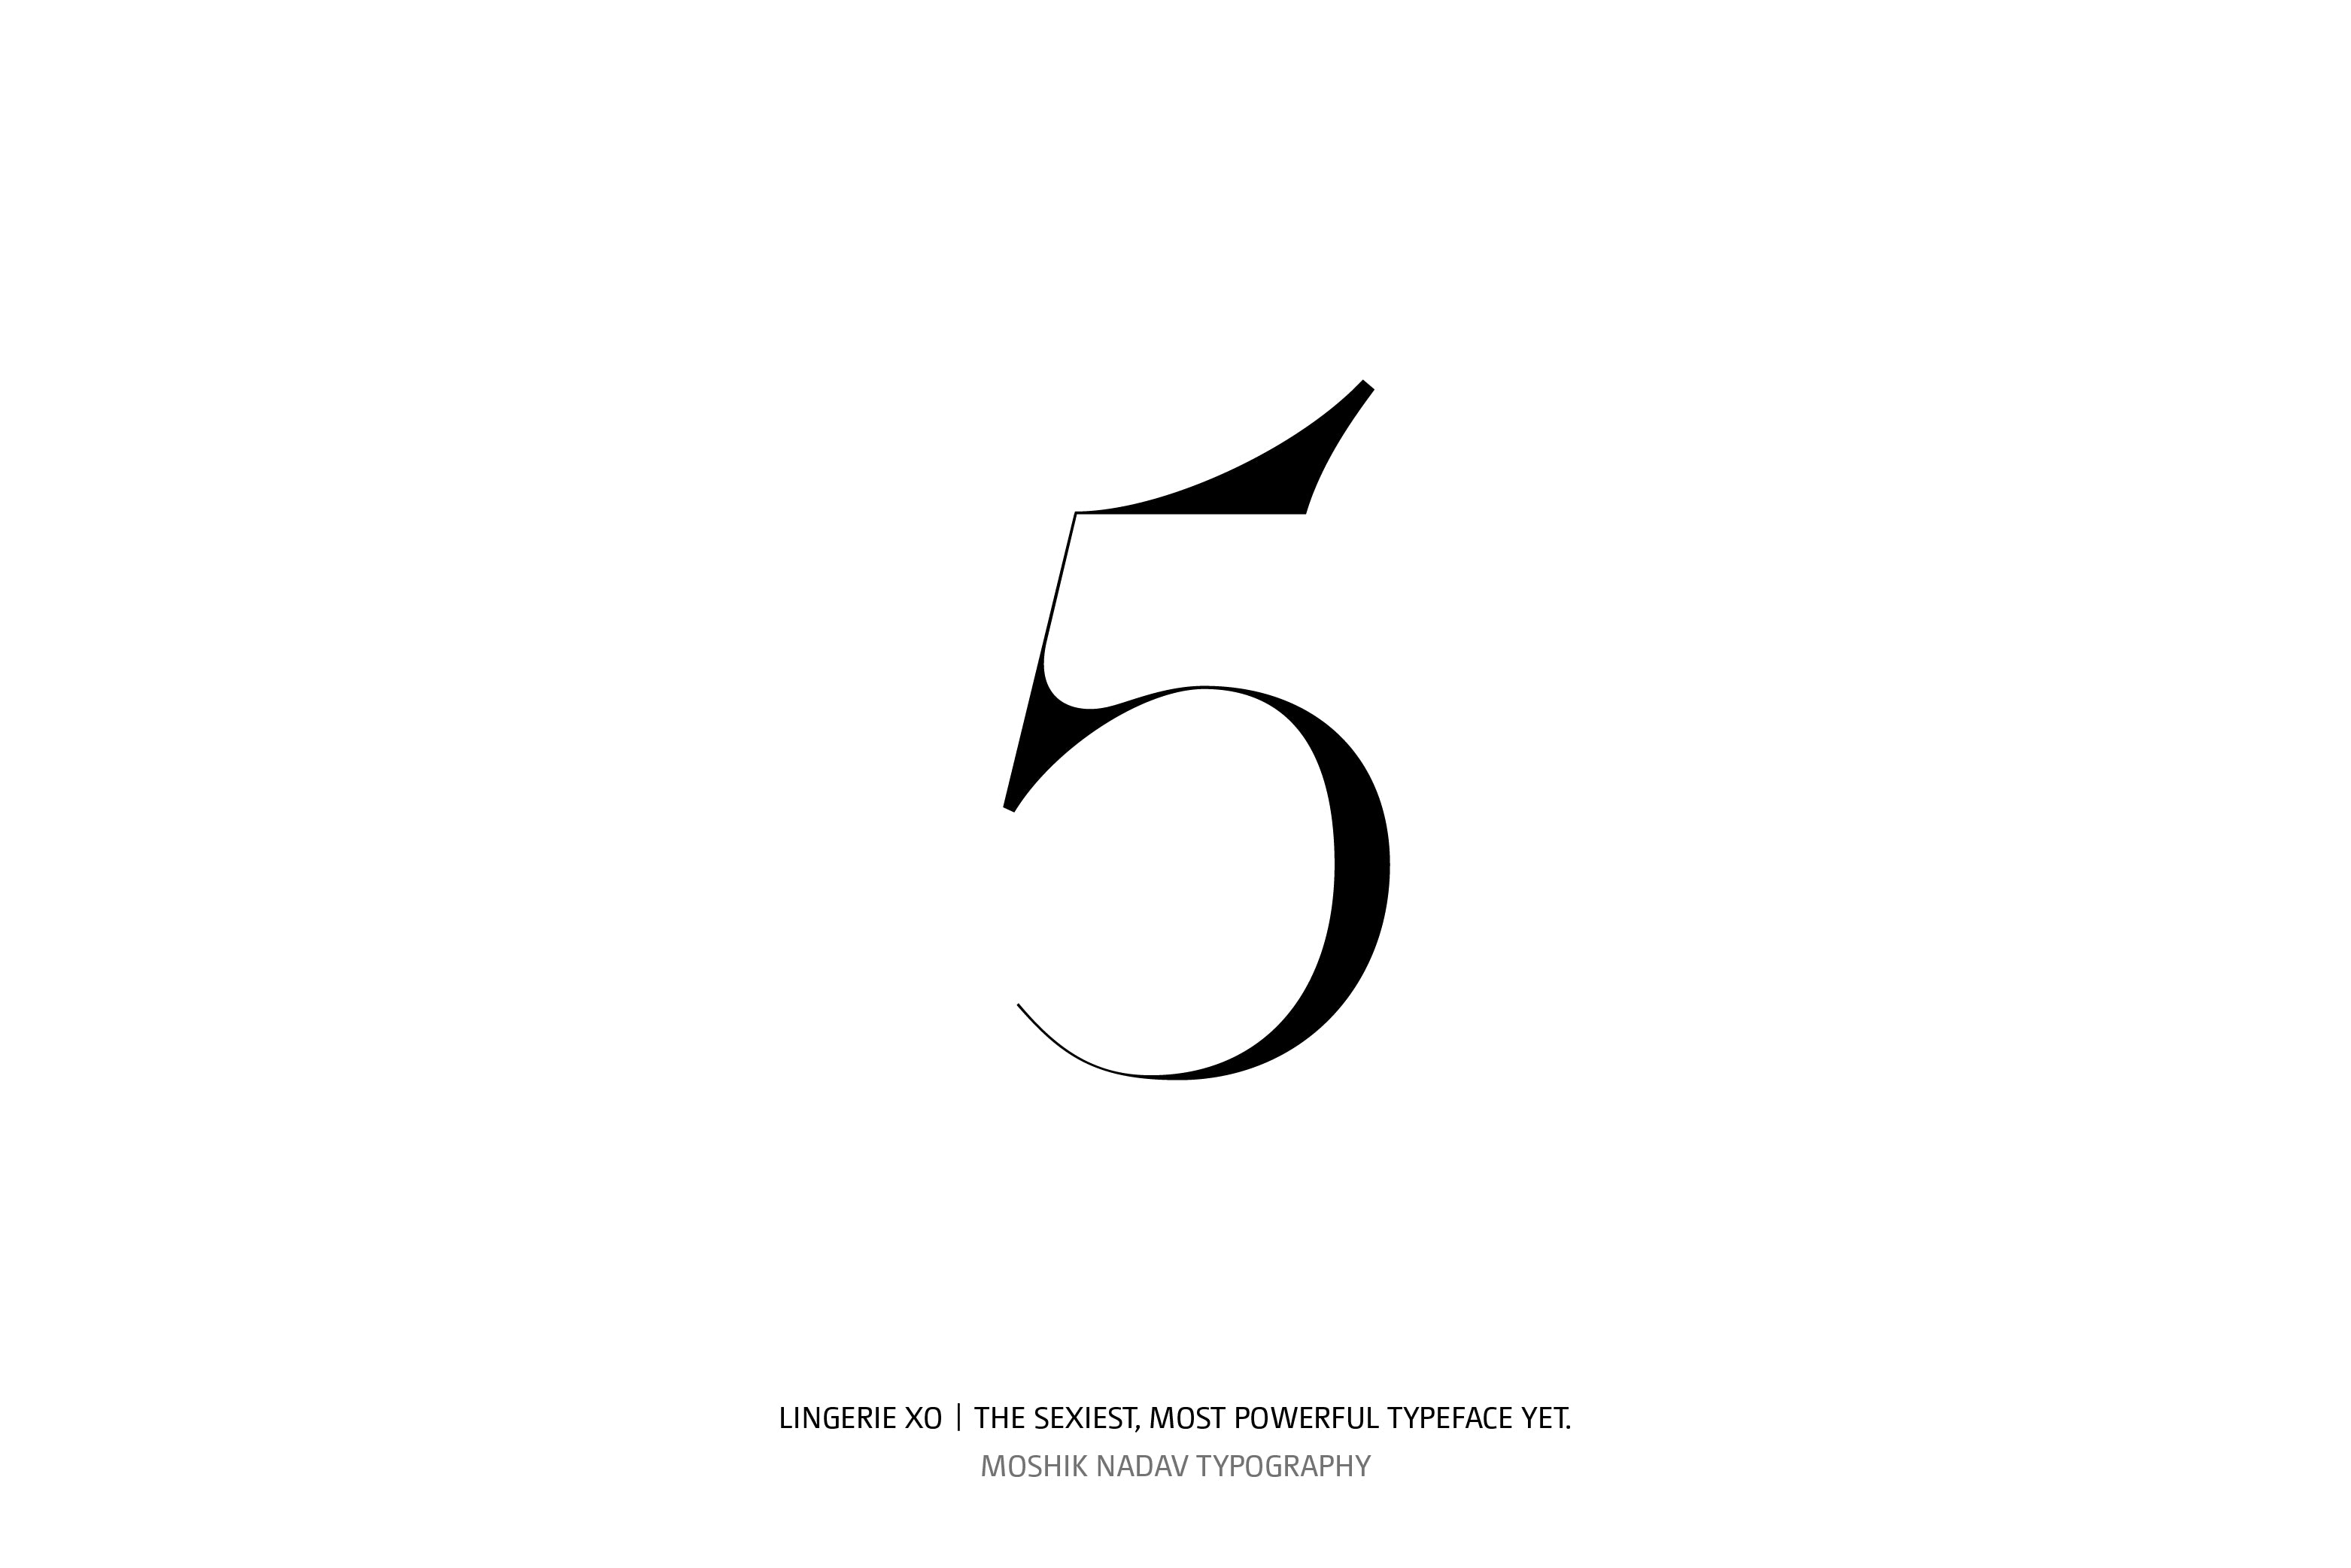 Lingerie XO Super Sexy Typeface - Moshik Nadav Typography number five